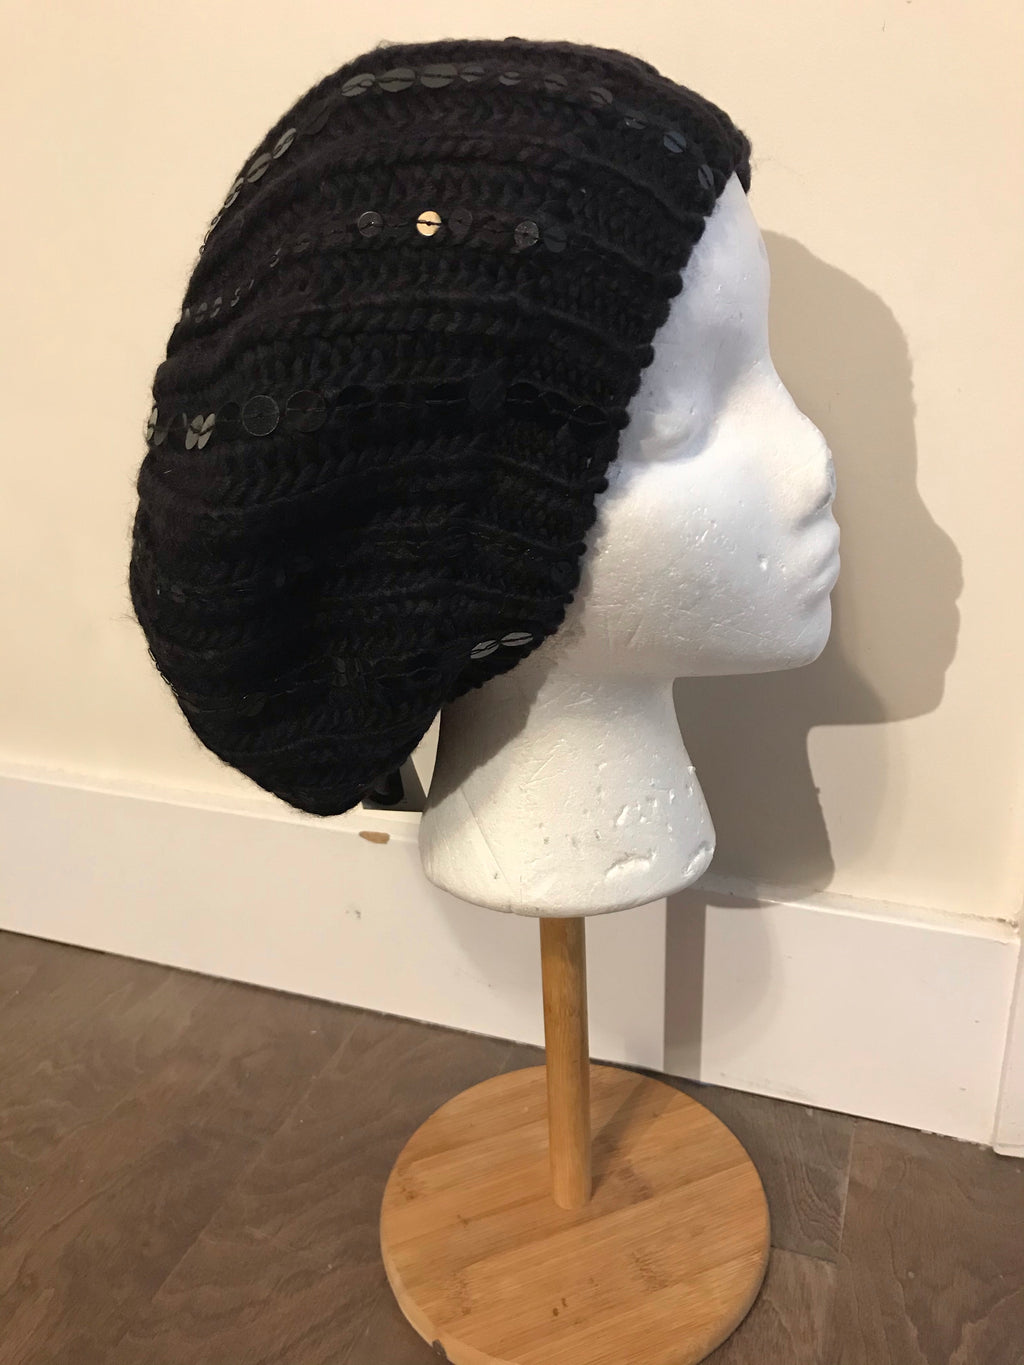 The Sequin Beret-Black